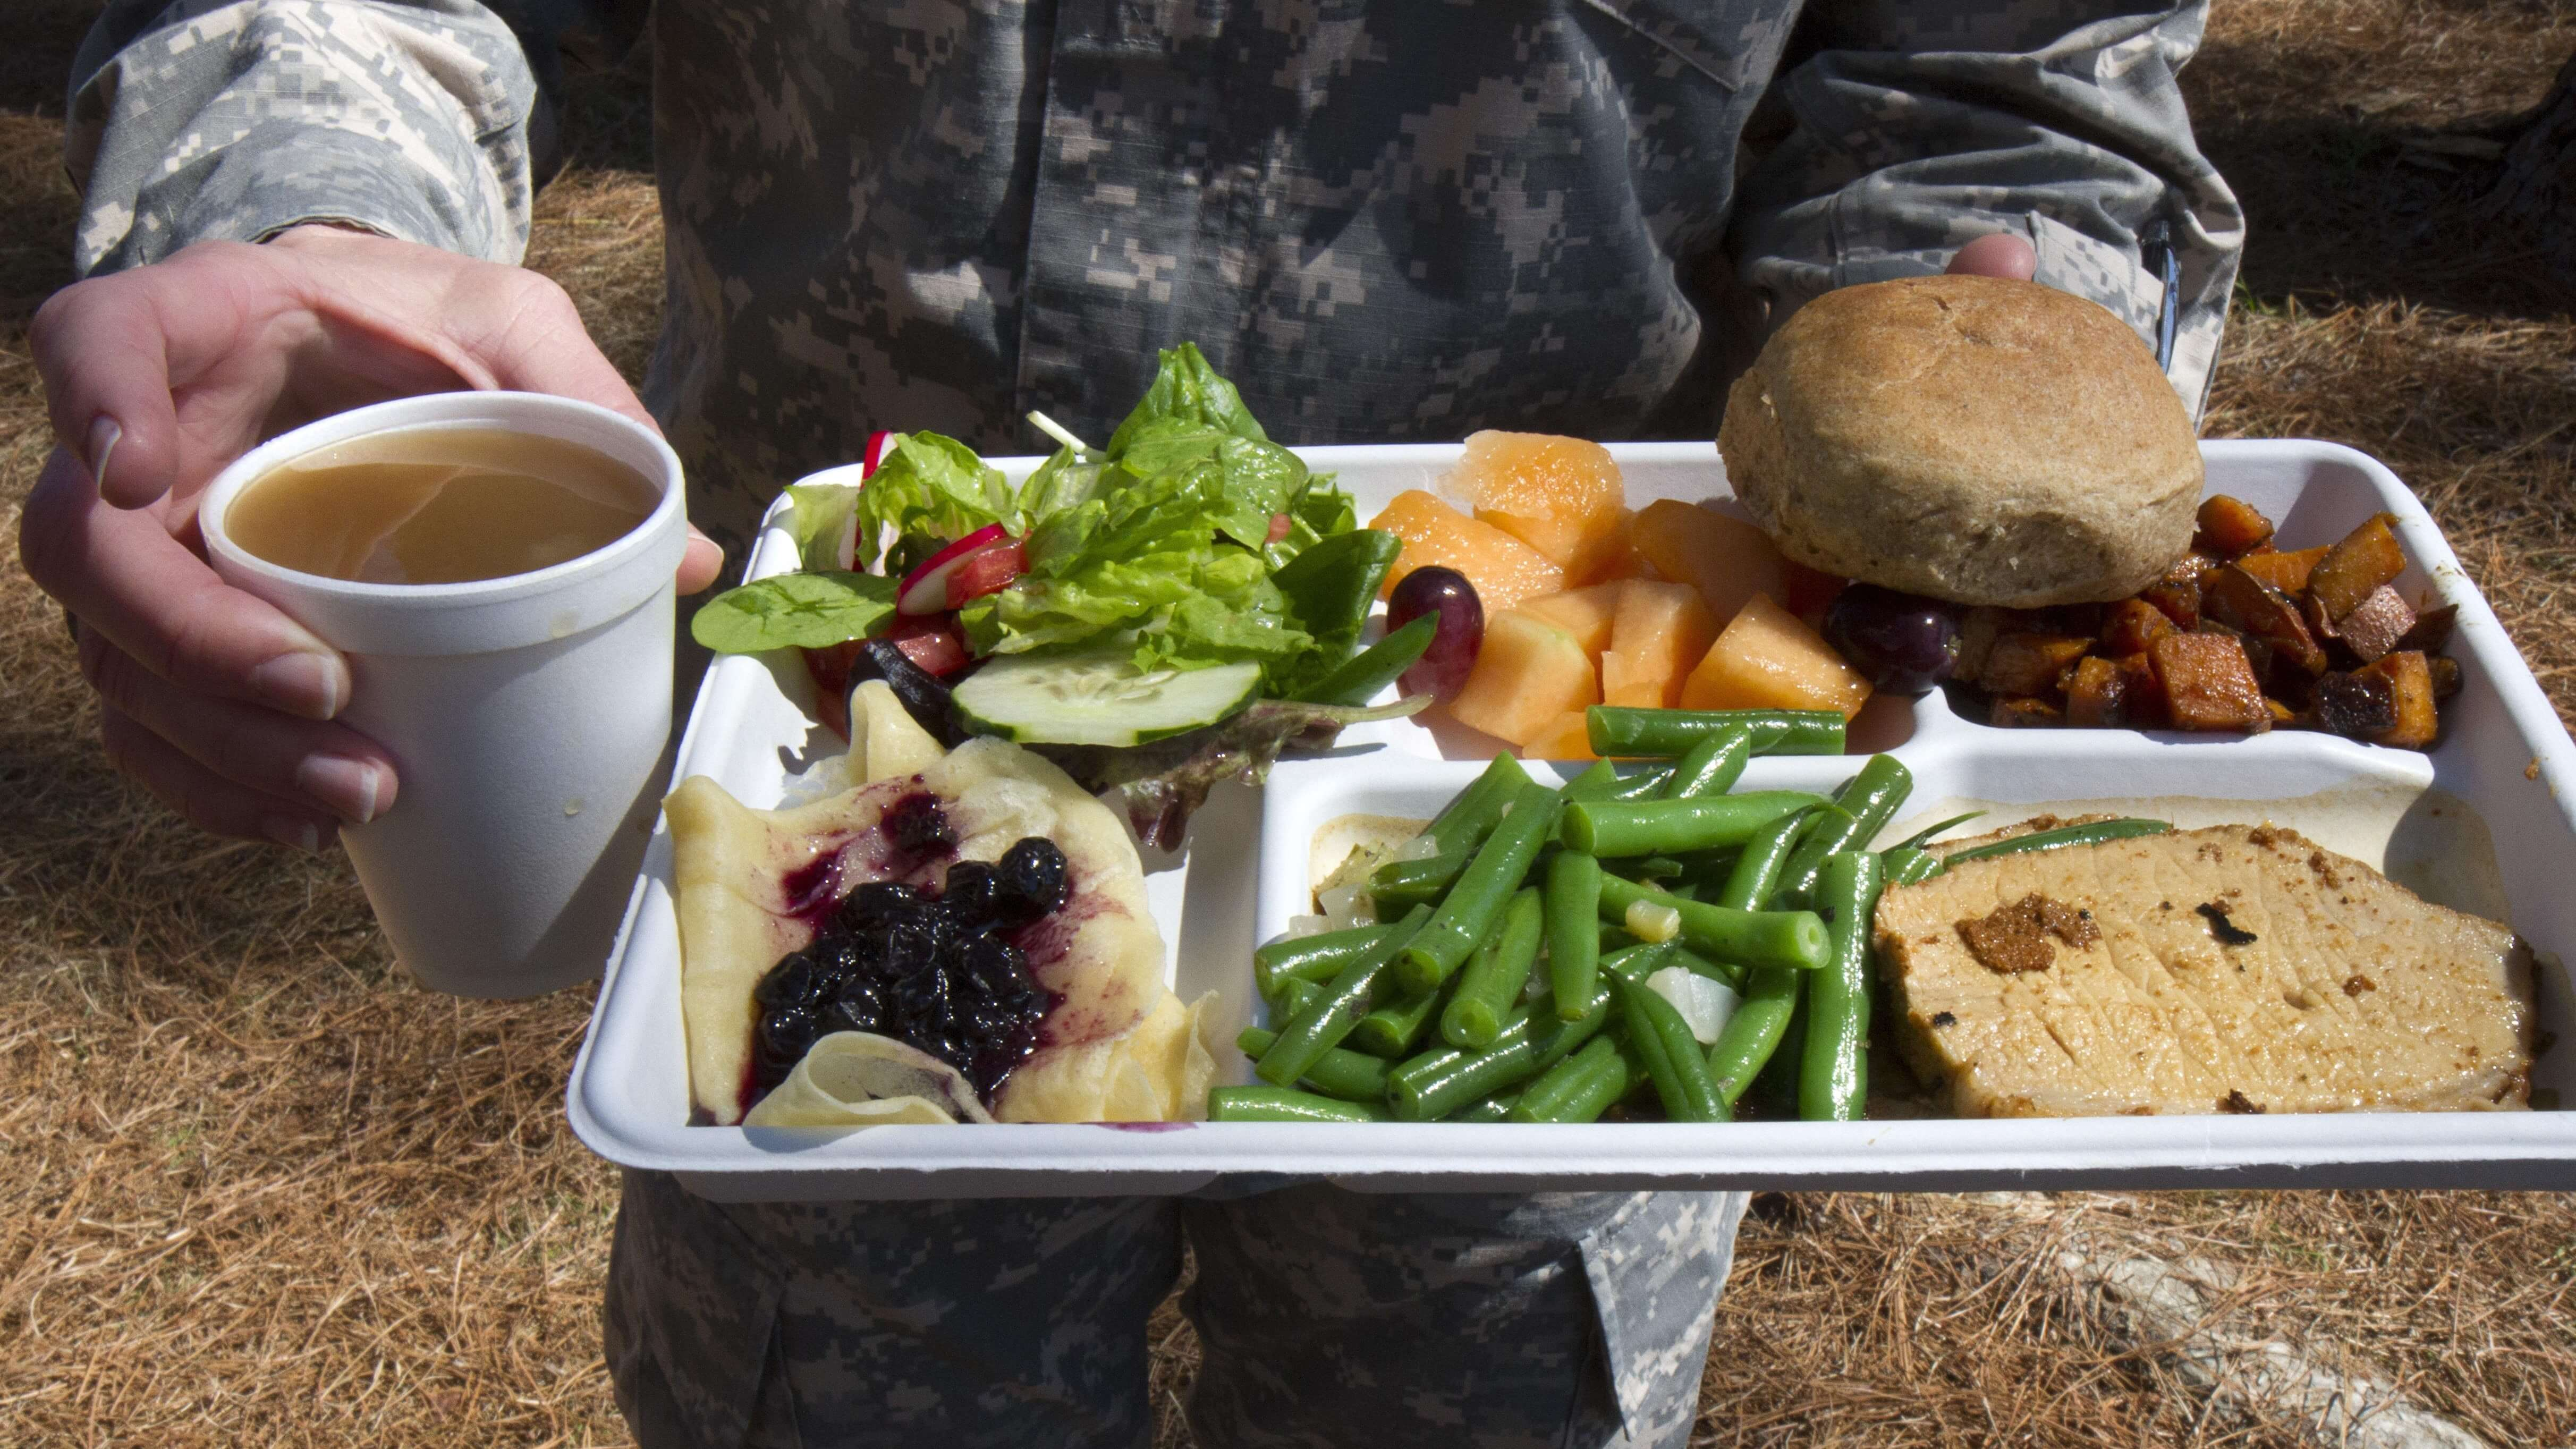 Finland's Army Serves Soldiers Quorn's Plant-Based Meat to Save the Planet